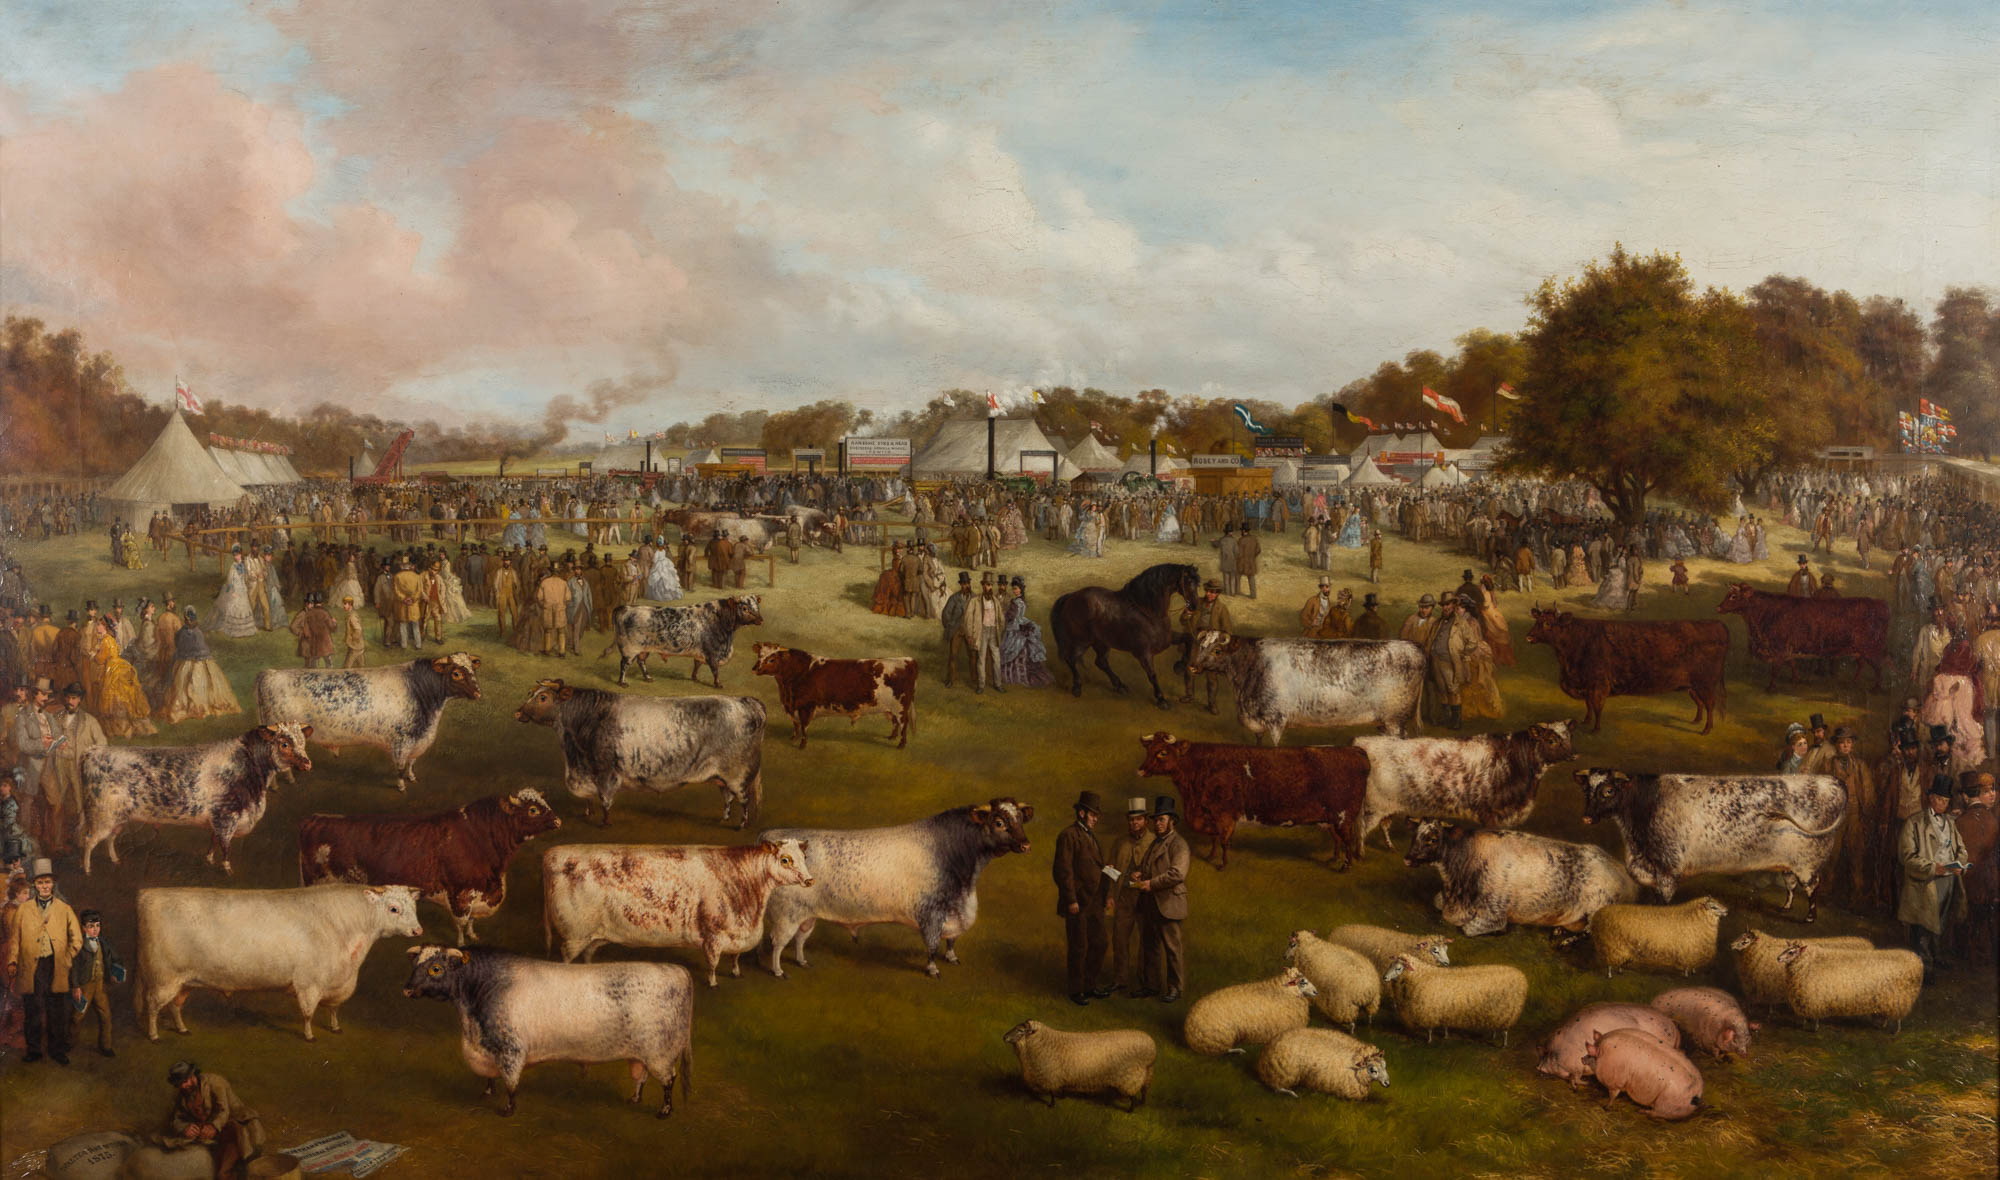 The Northamptonshire Agricultural Society's Annual Show Held at Burghley, September 1875, by Walter Ray Woods, (1823-1902).